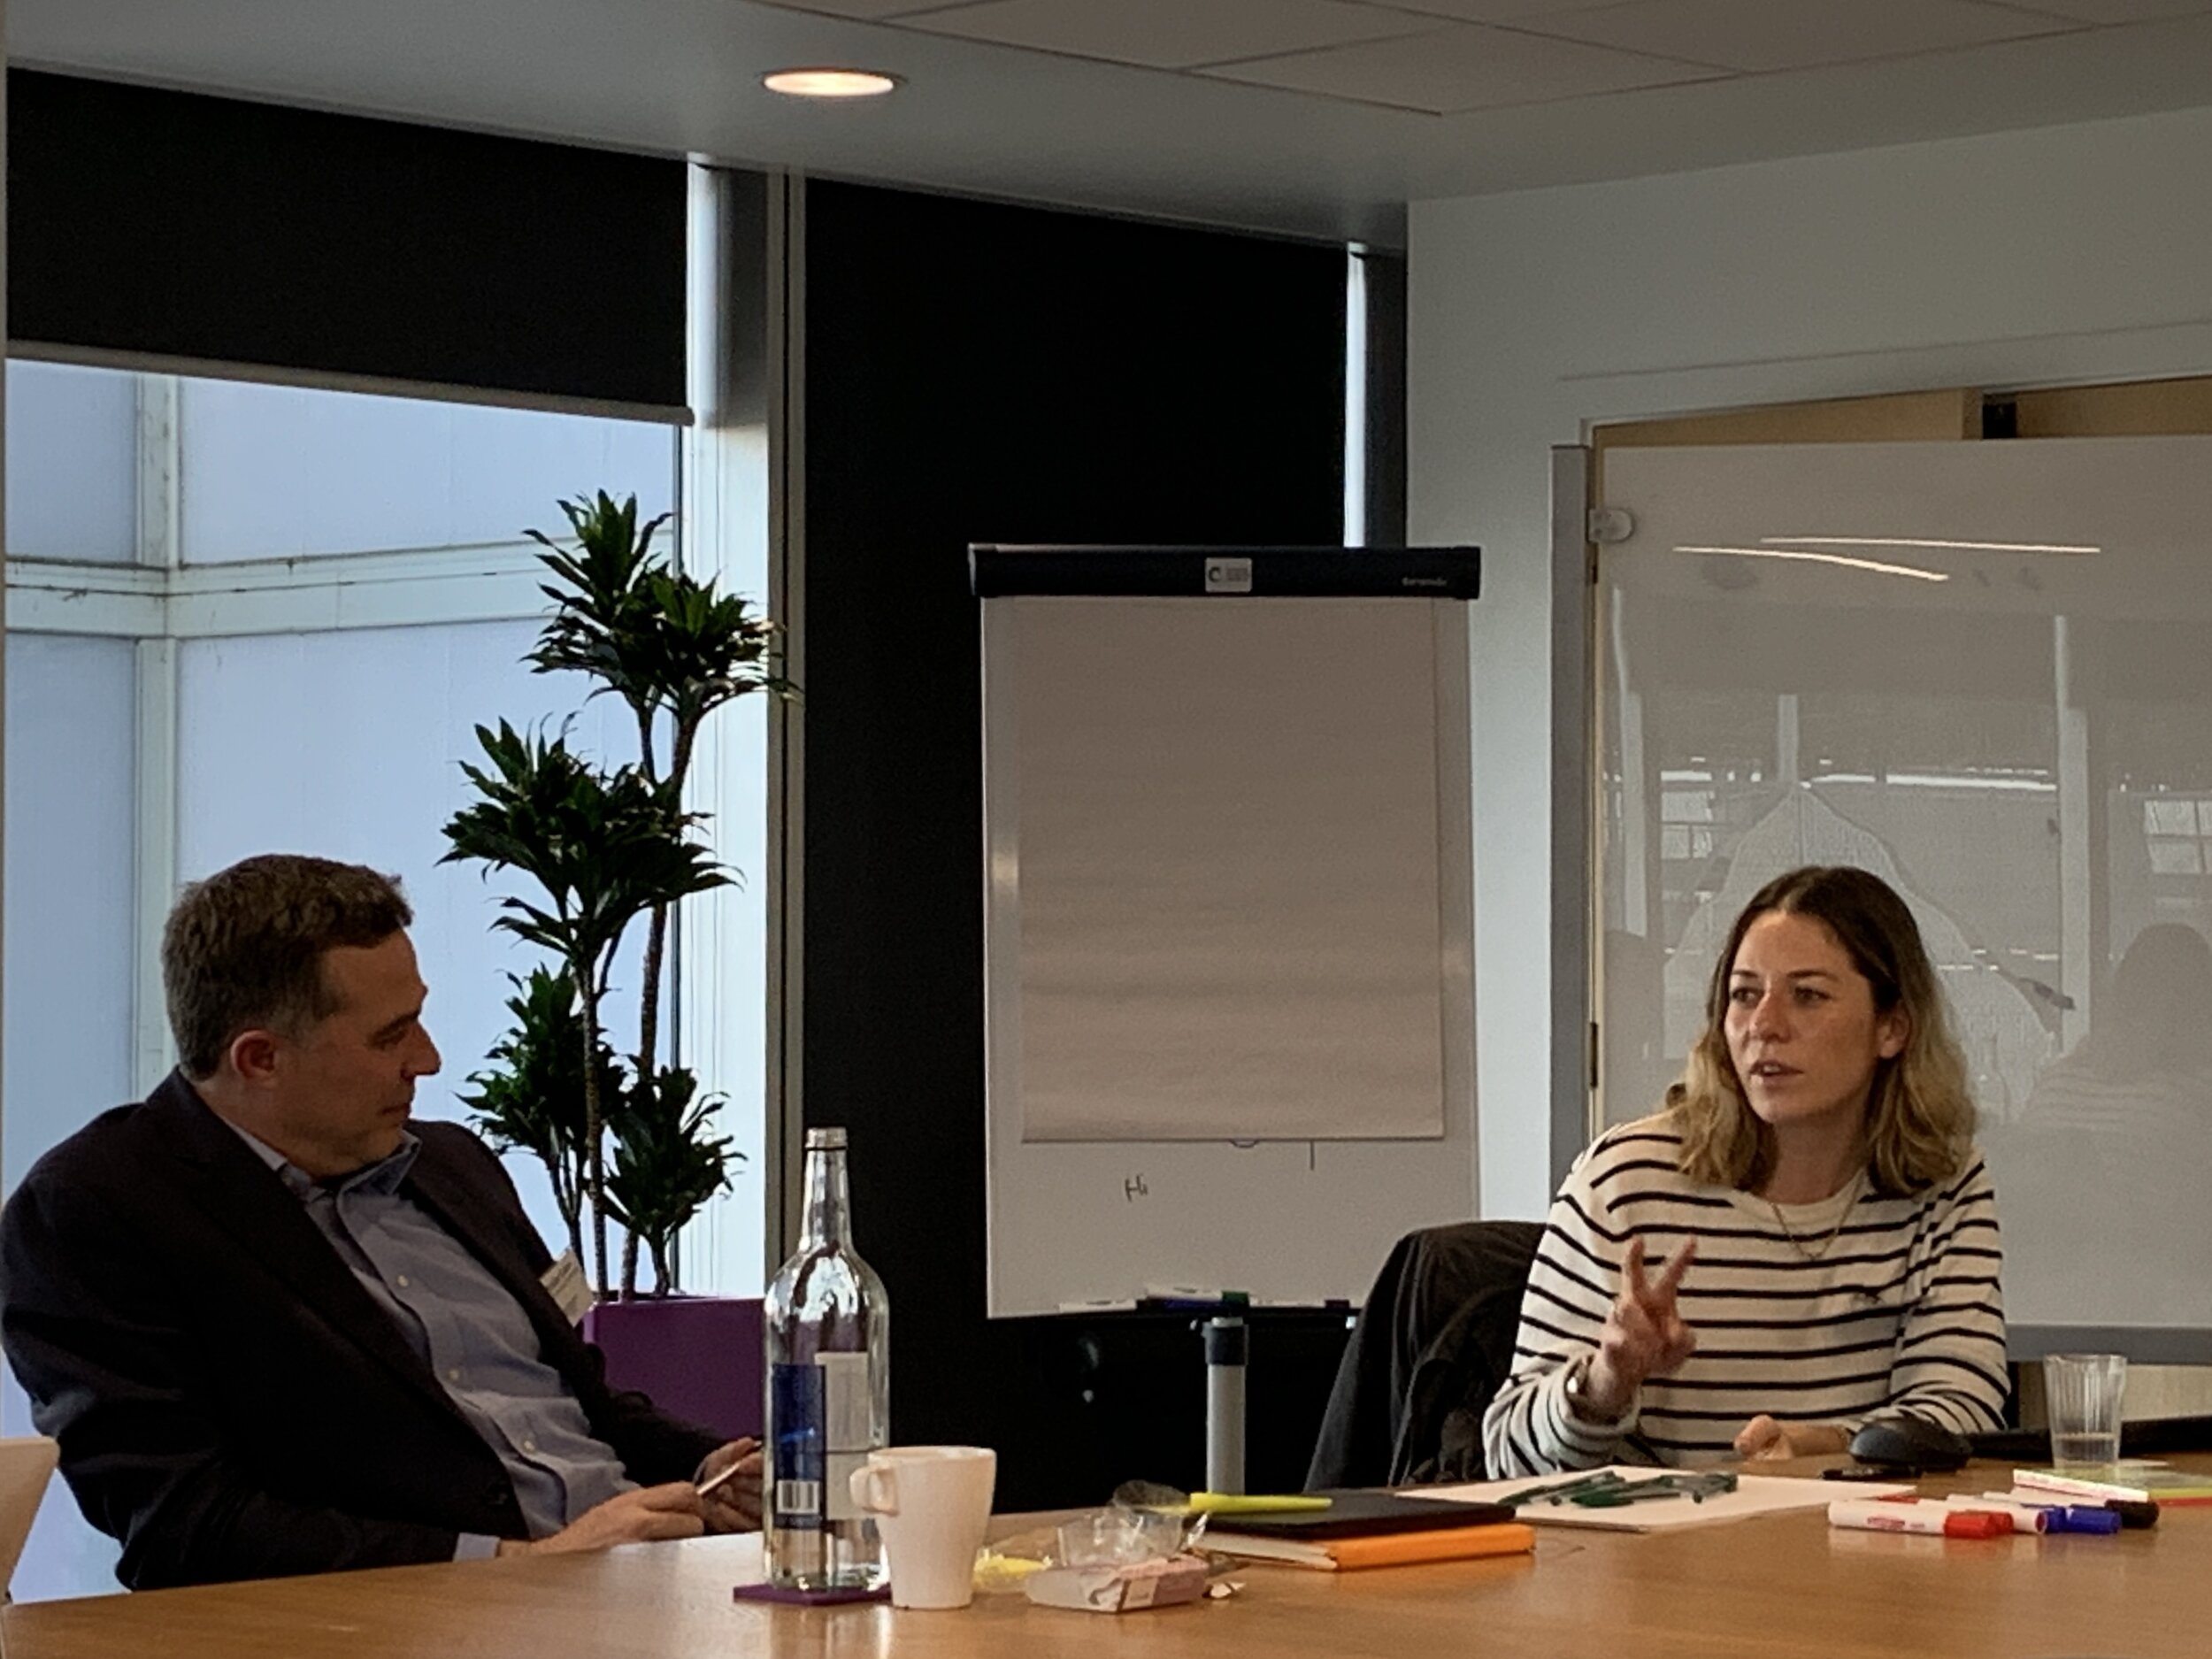 Members debate at the Sport & Outdoor Apparel Network in London, here Head of Product Development Miriam Roles Lock at Rapha & Michael Caine Professor of Sport Technology and Innovation at Loughborough University.